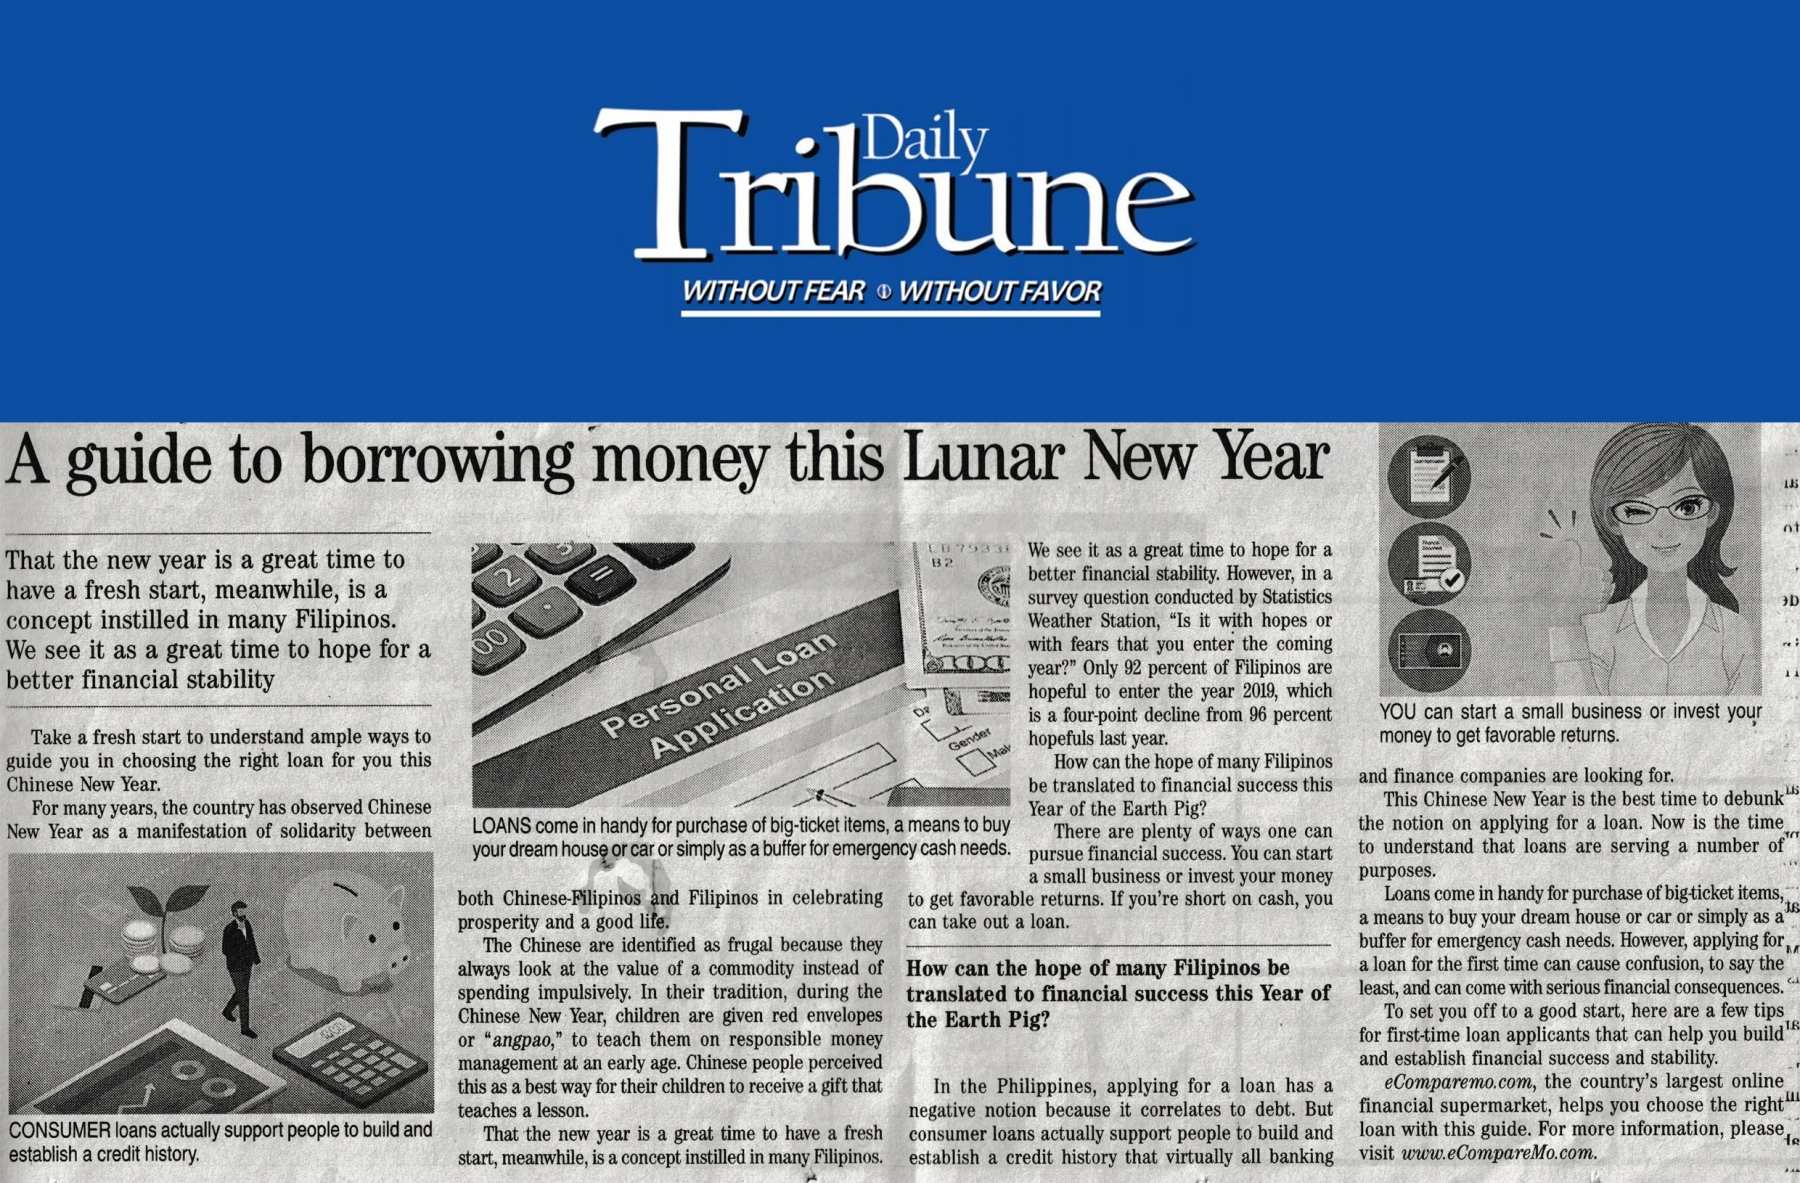 A guide to borrowing money this Lunar New Year